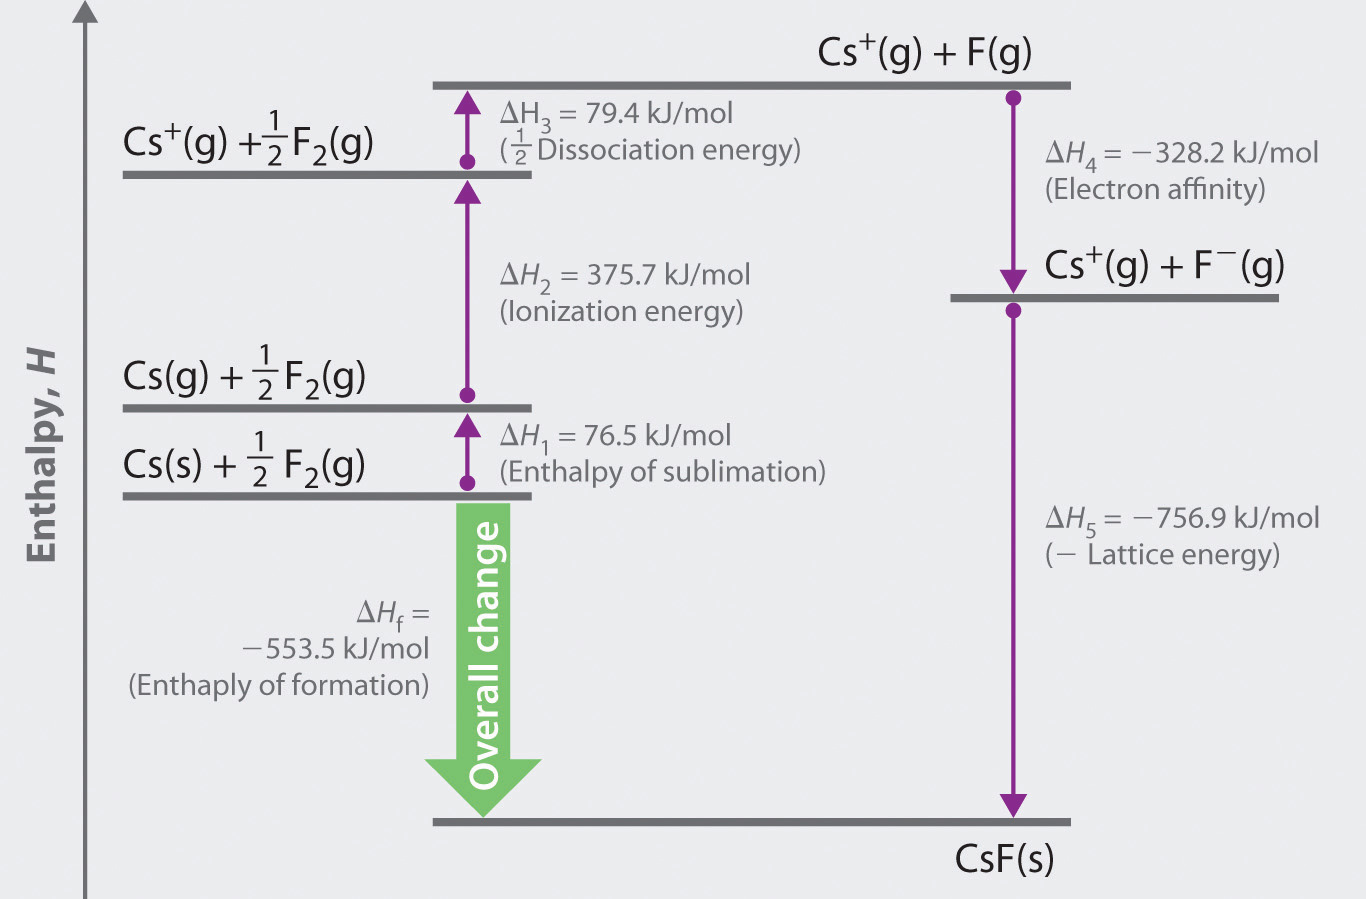 how to find enthalpy of dissolution for sodium acetate anhydrous